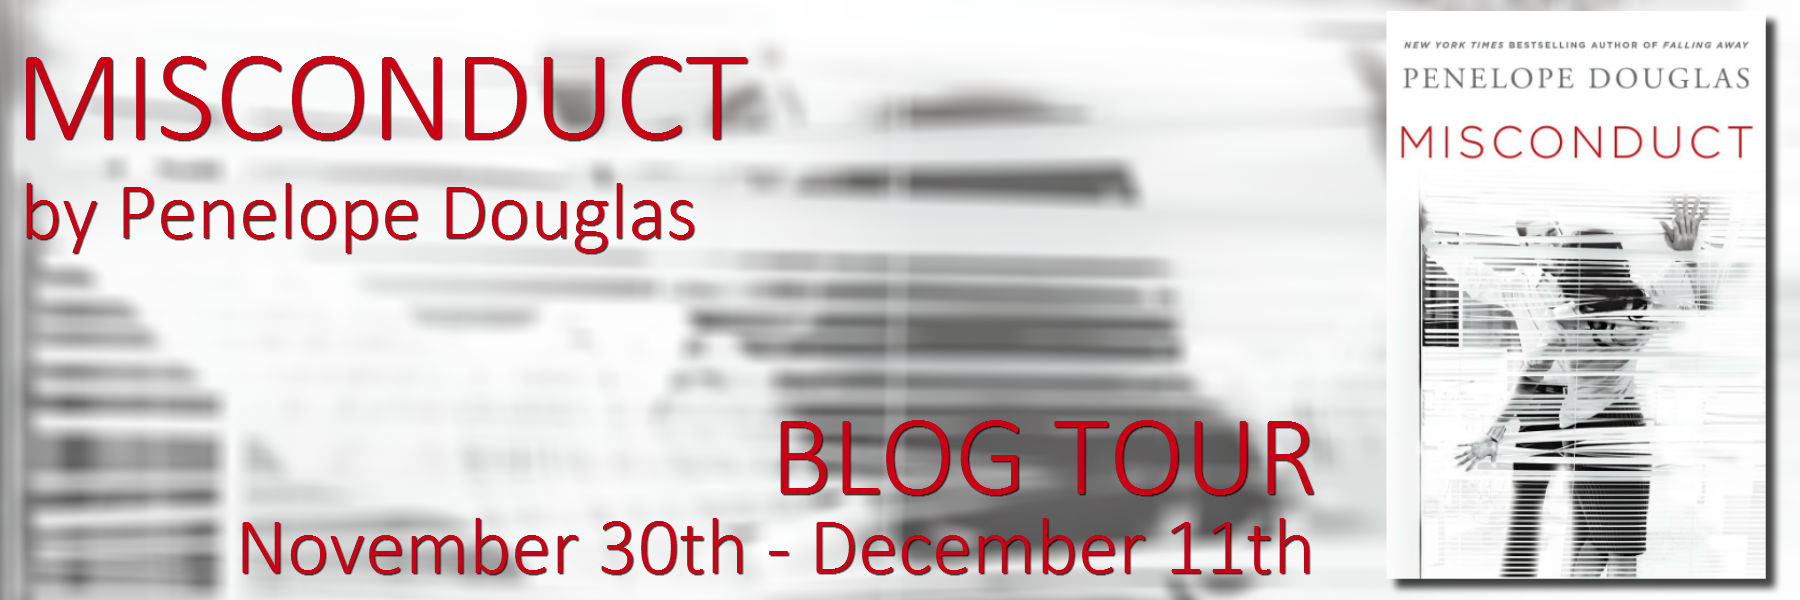 Misconduct * Blog Tour * Review * Sexy Excerpt * Two Fantastic Giveaways